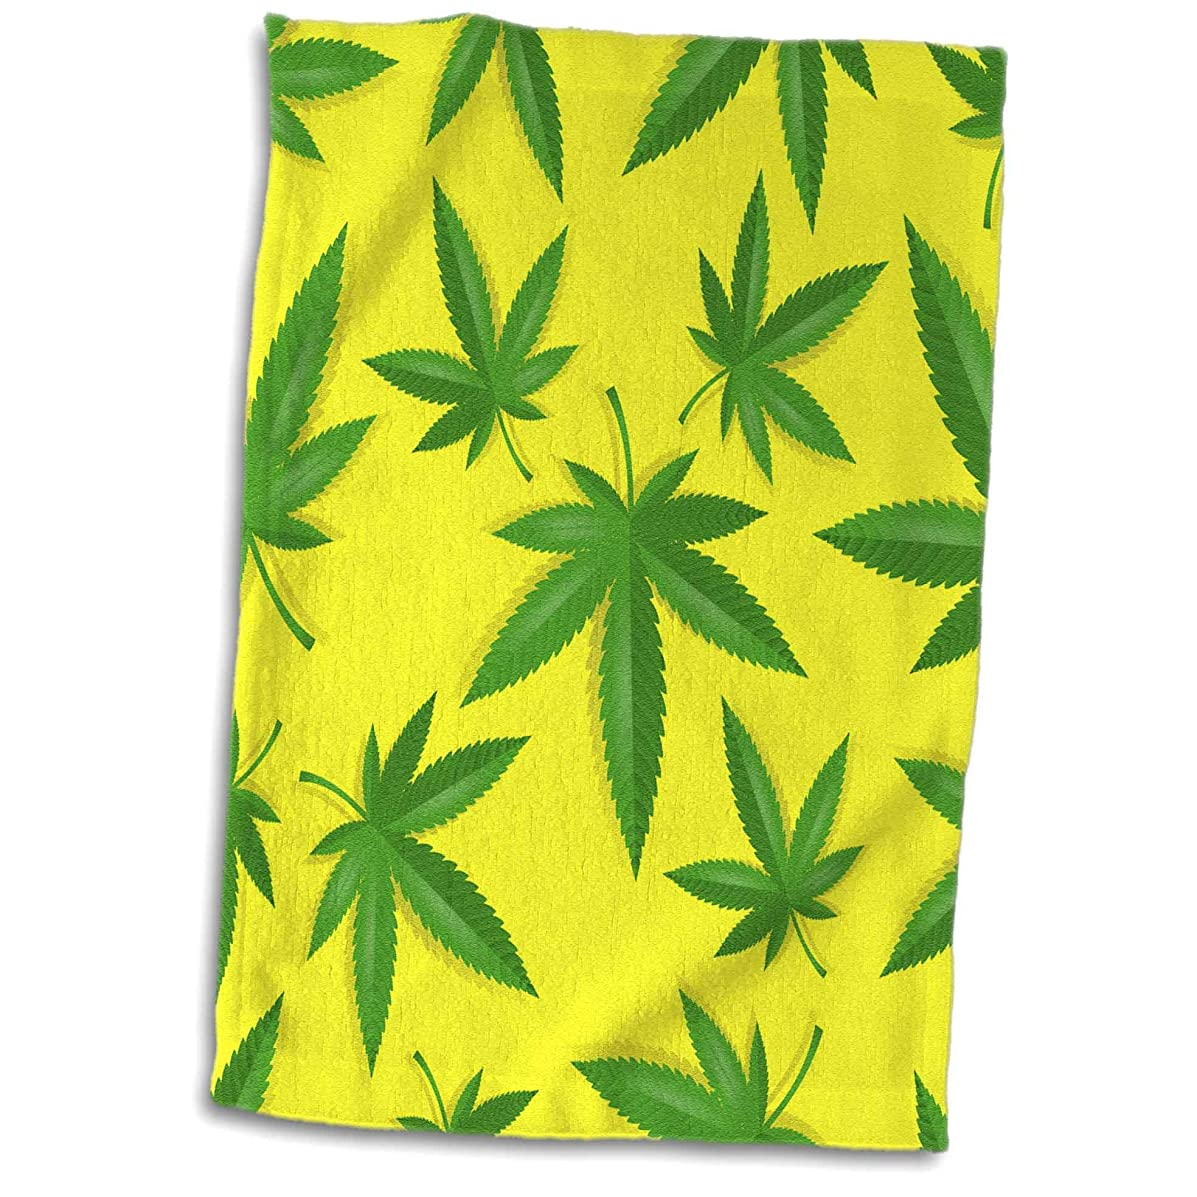 3dRose Sven Herkenrath Pattern - Pattern Style of Cannabis Leaf with Yellow Background - 15x22 Hand Towel (twl_311024_1)